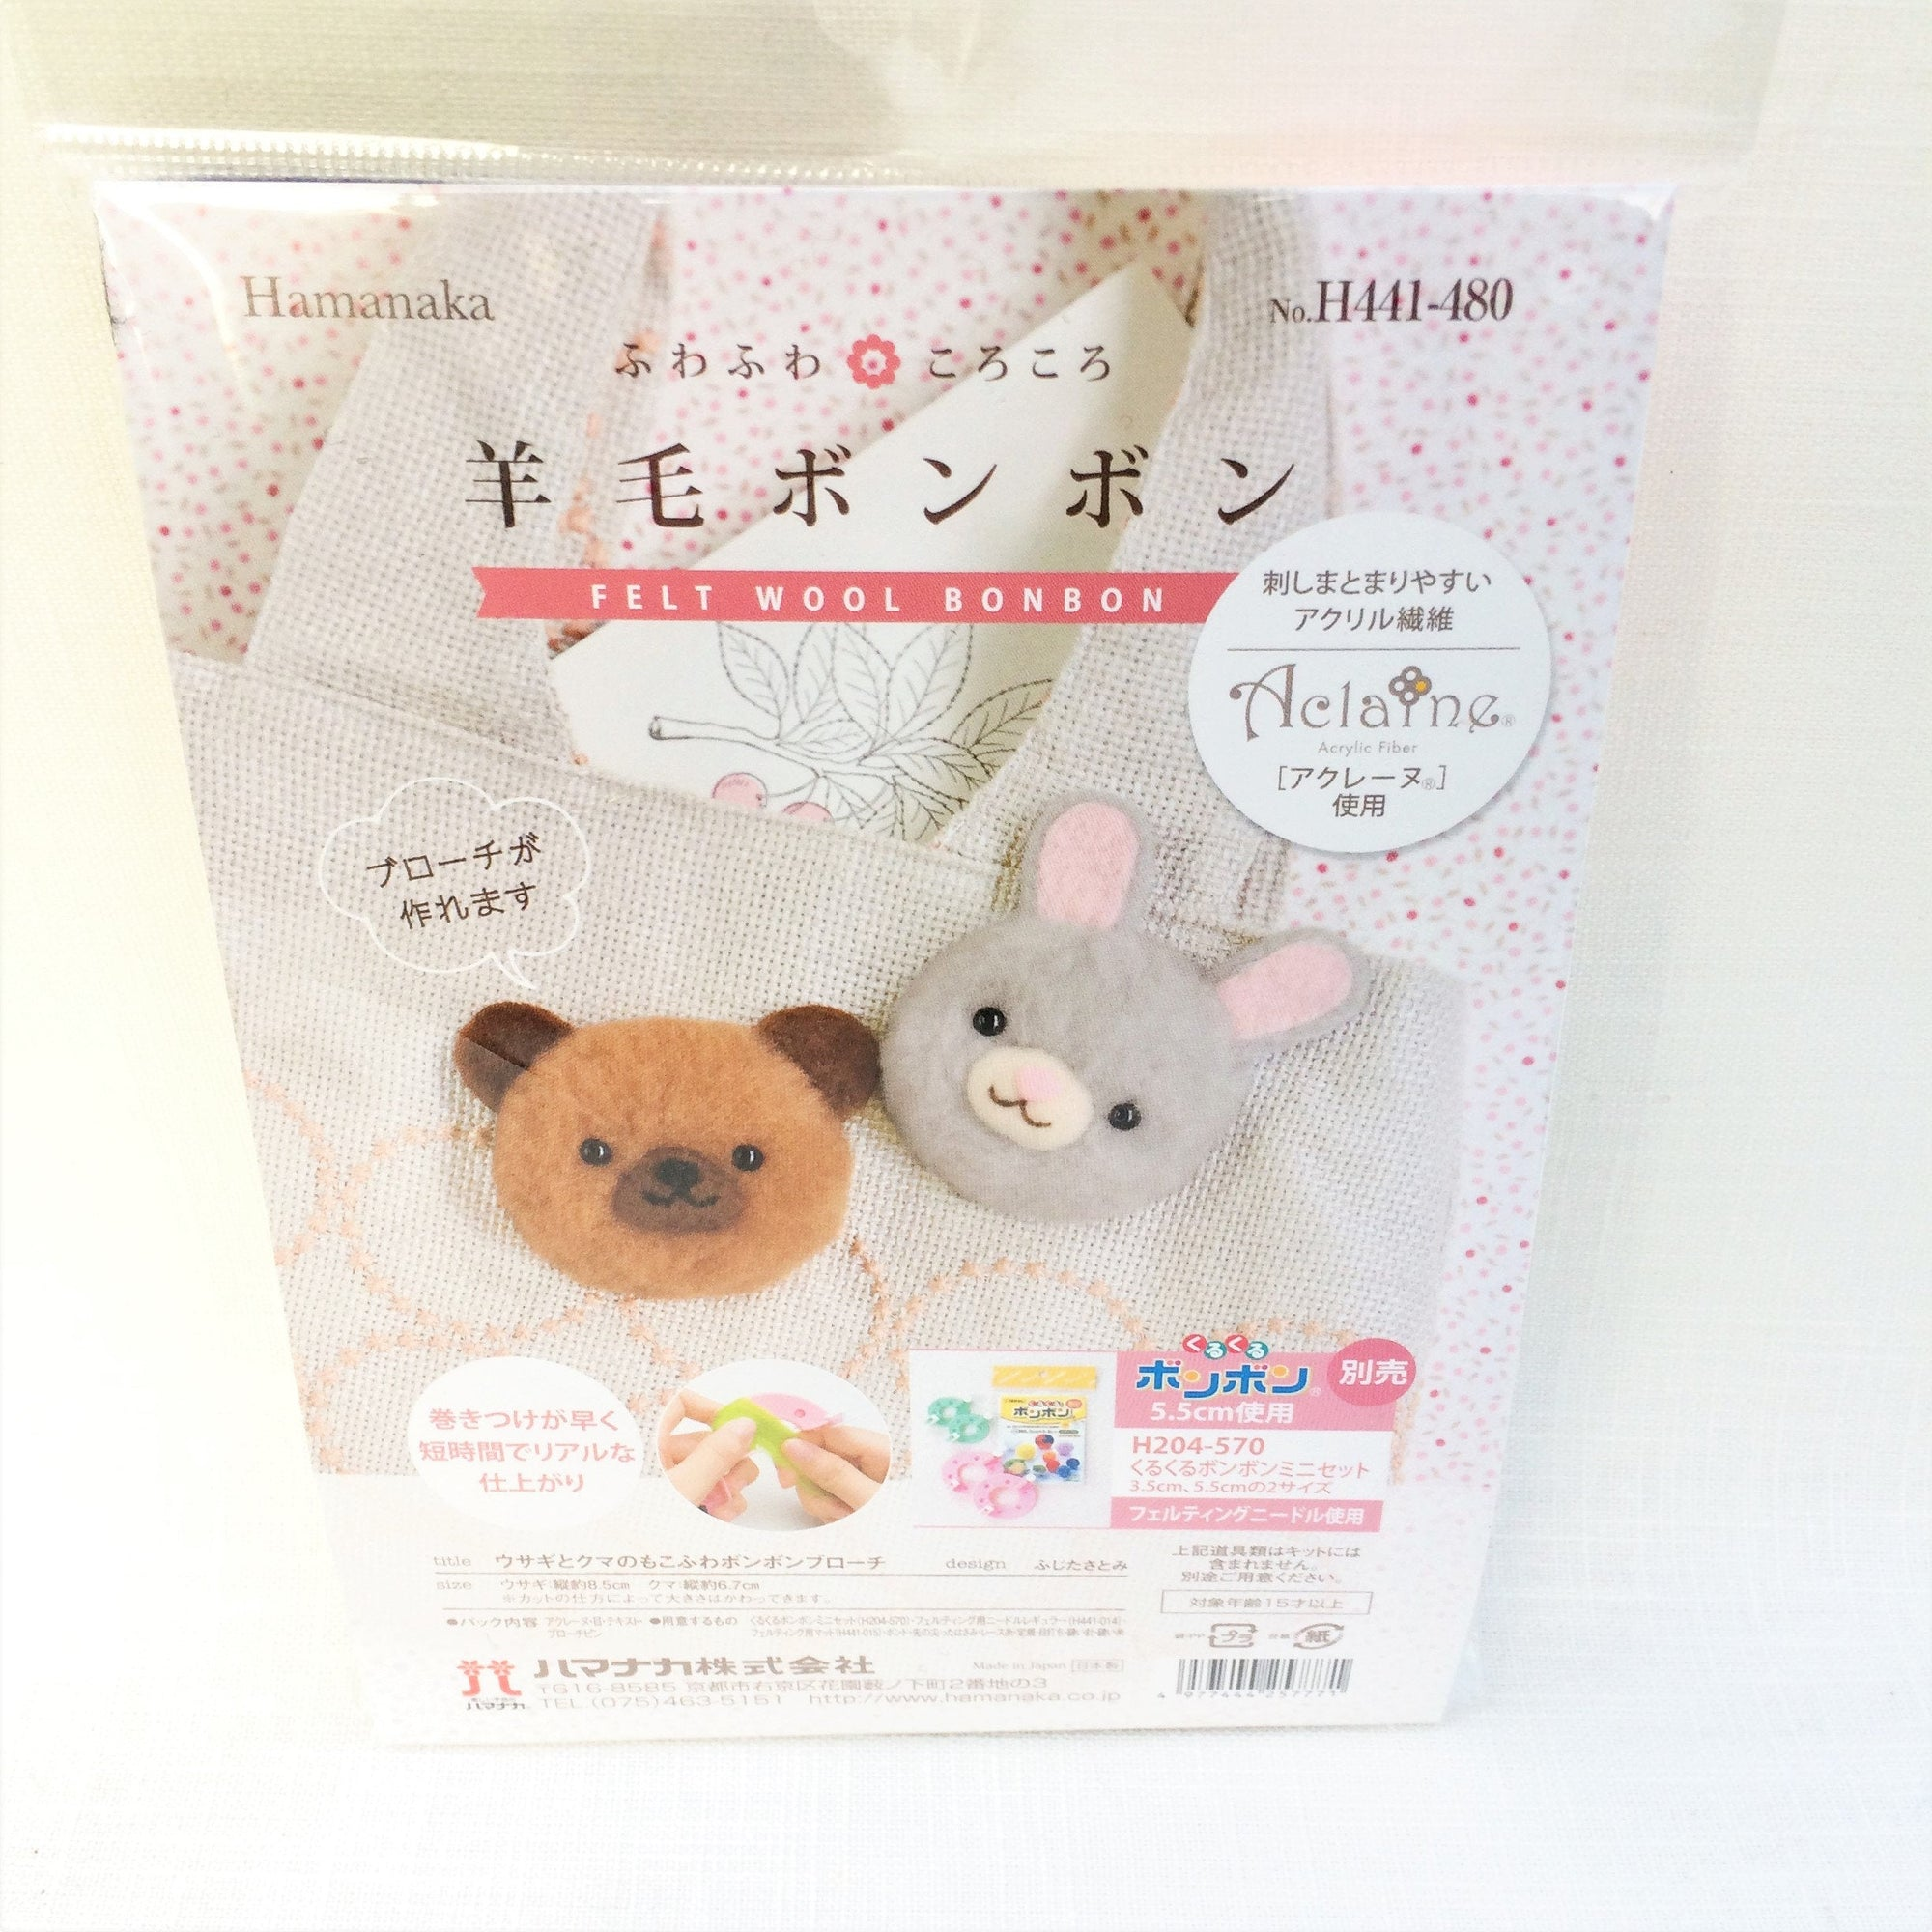 Hamanaka Pom Pom Kit - Rabbit and Bear Brooches.